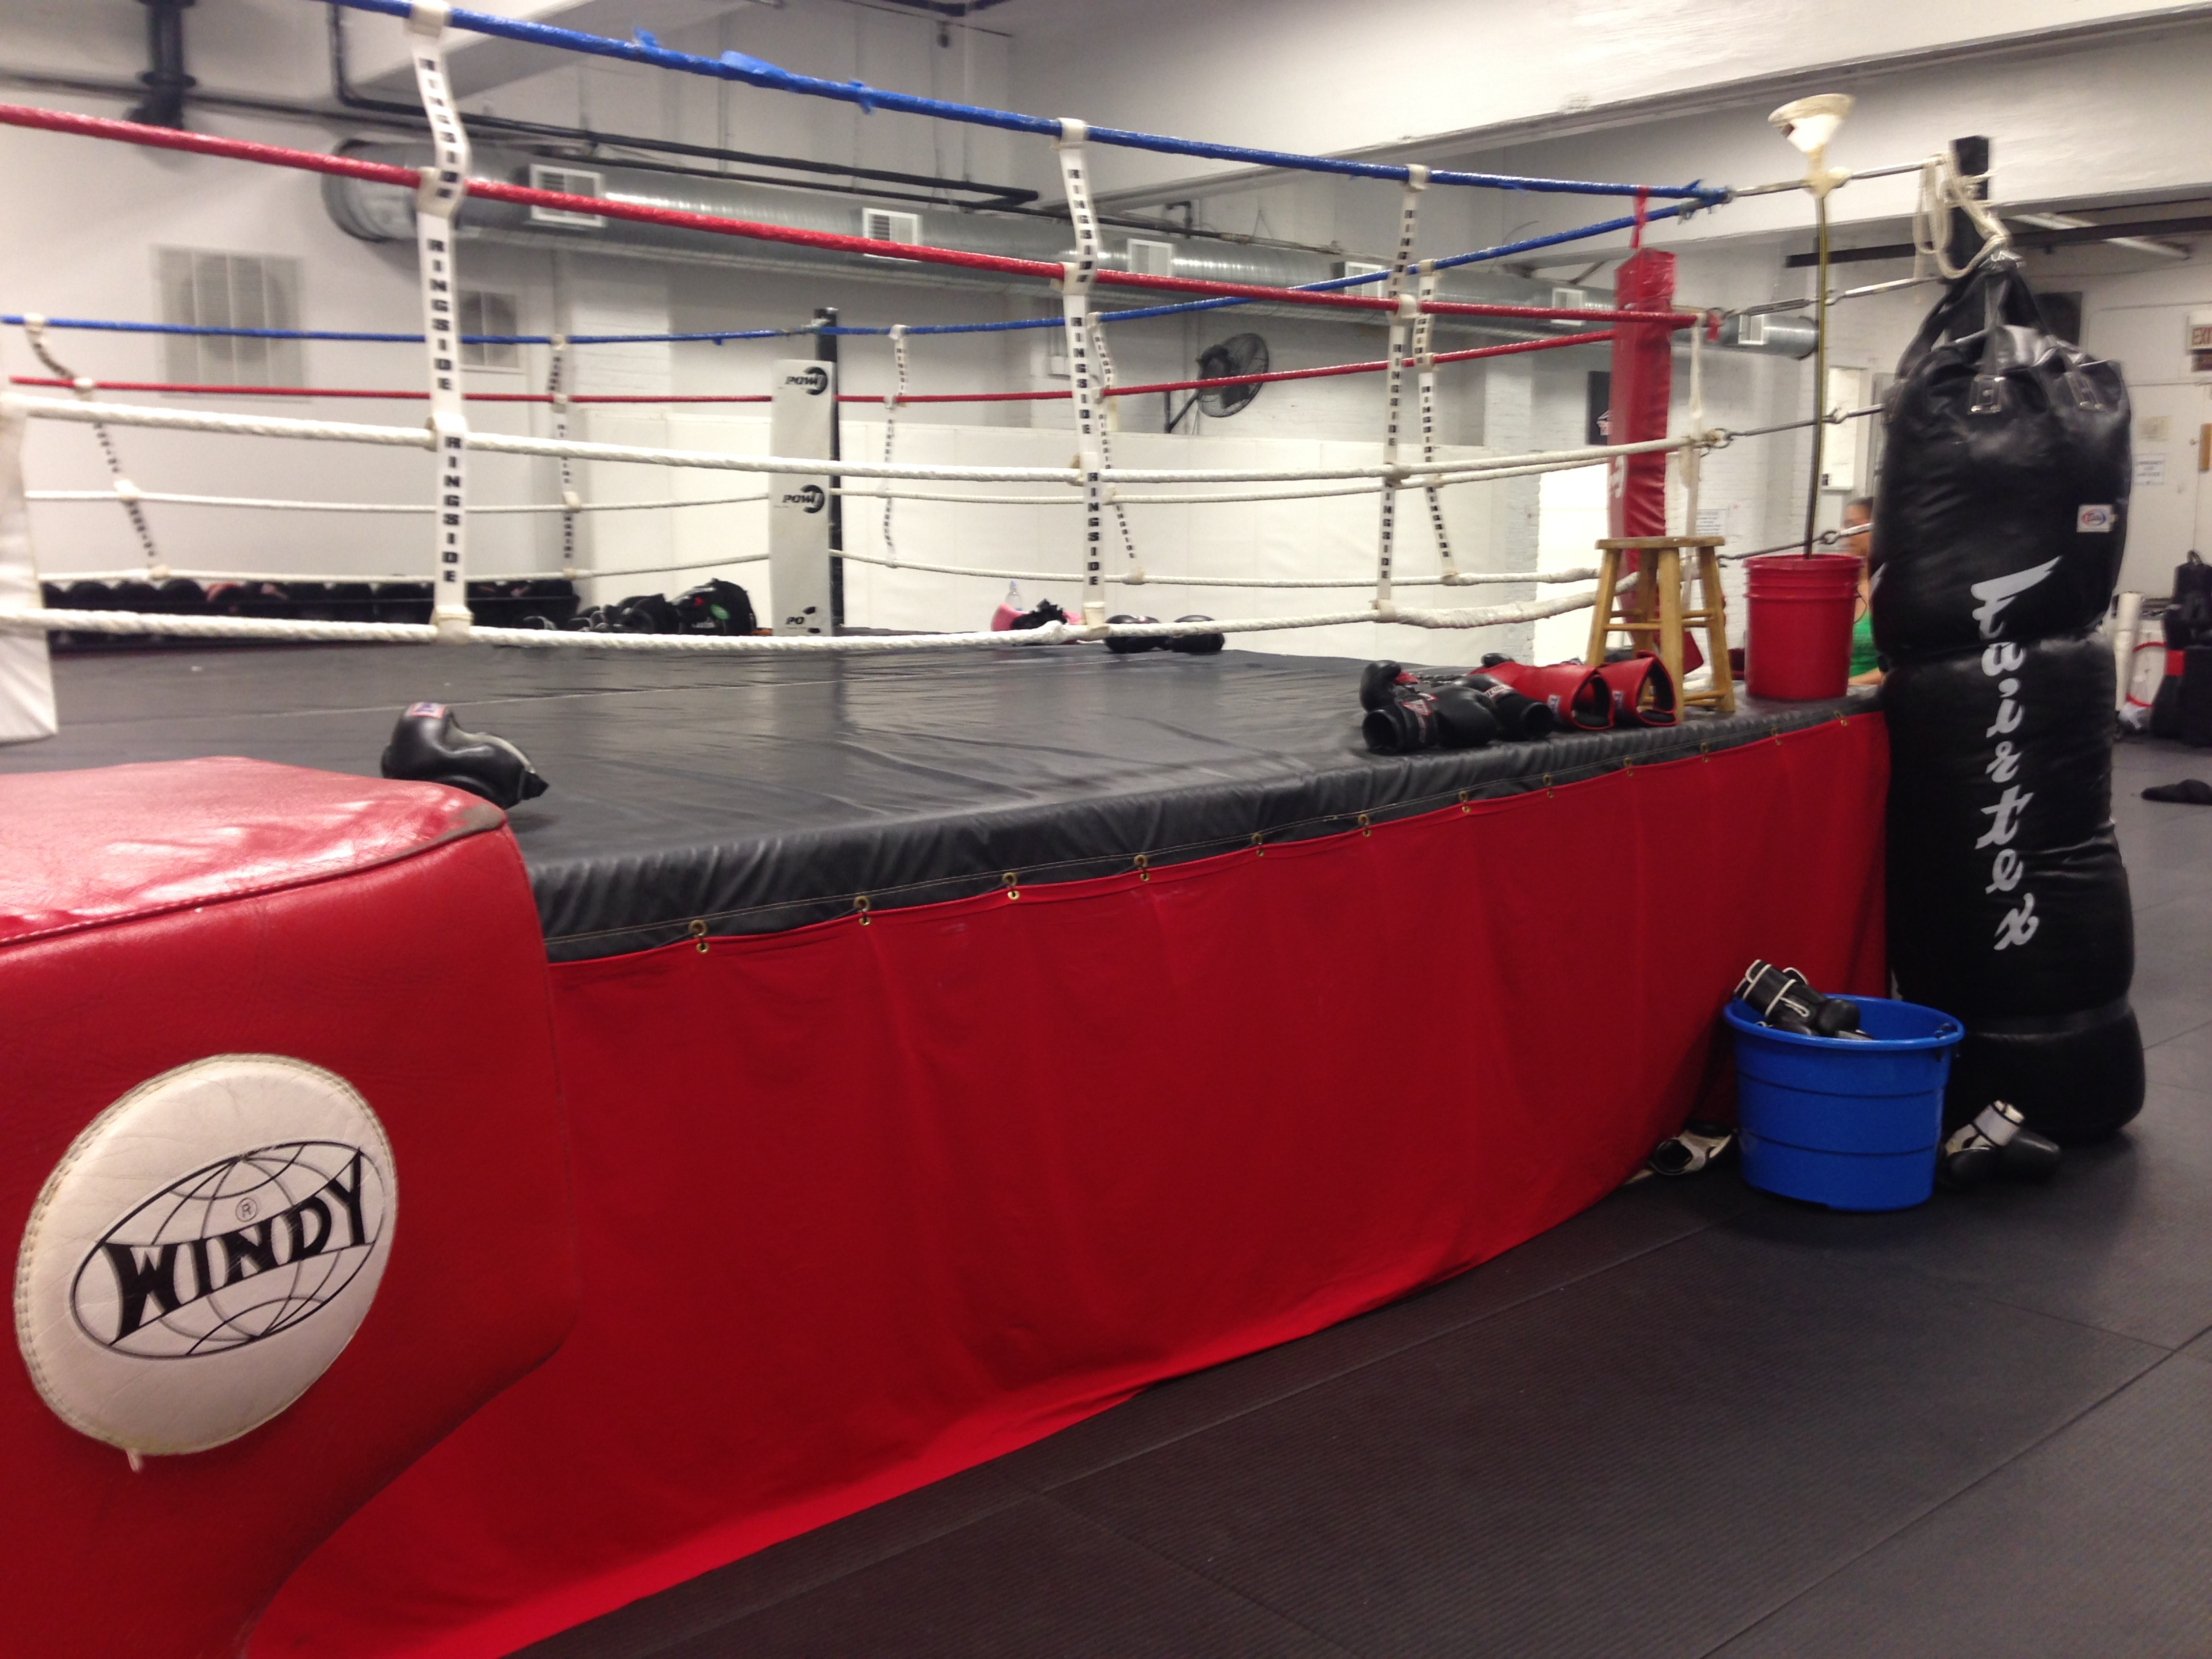 POW boxing ring